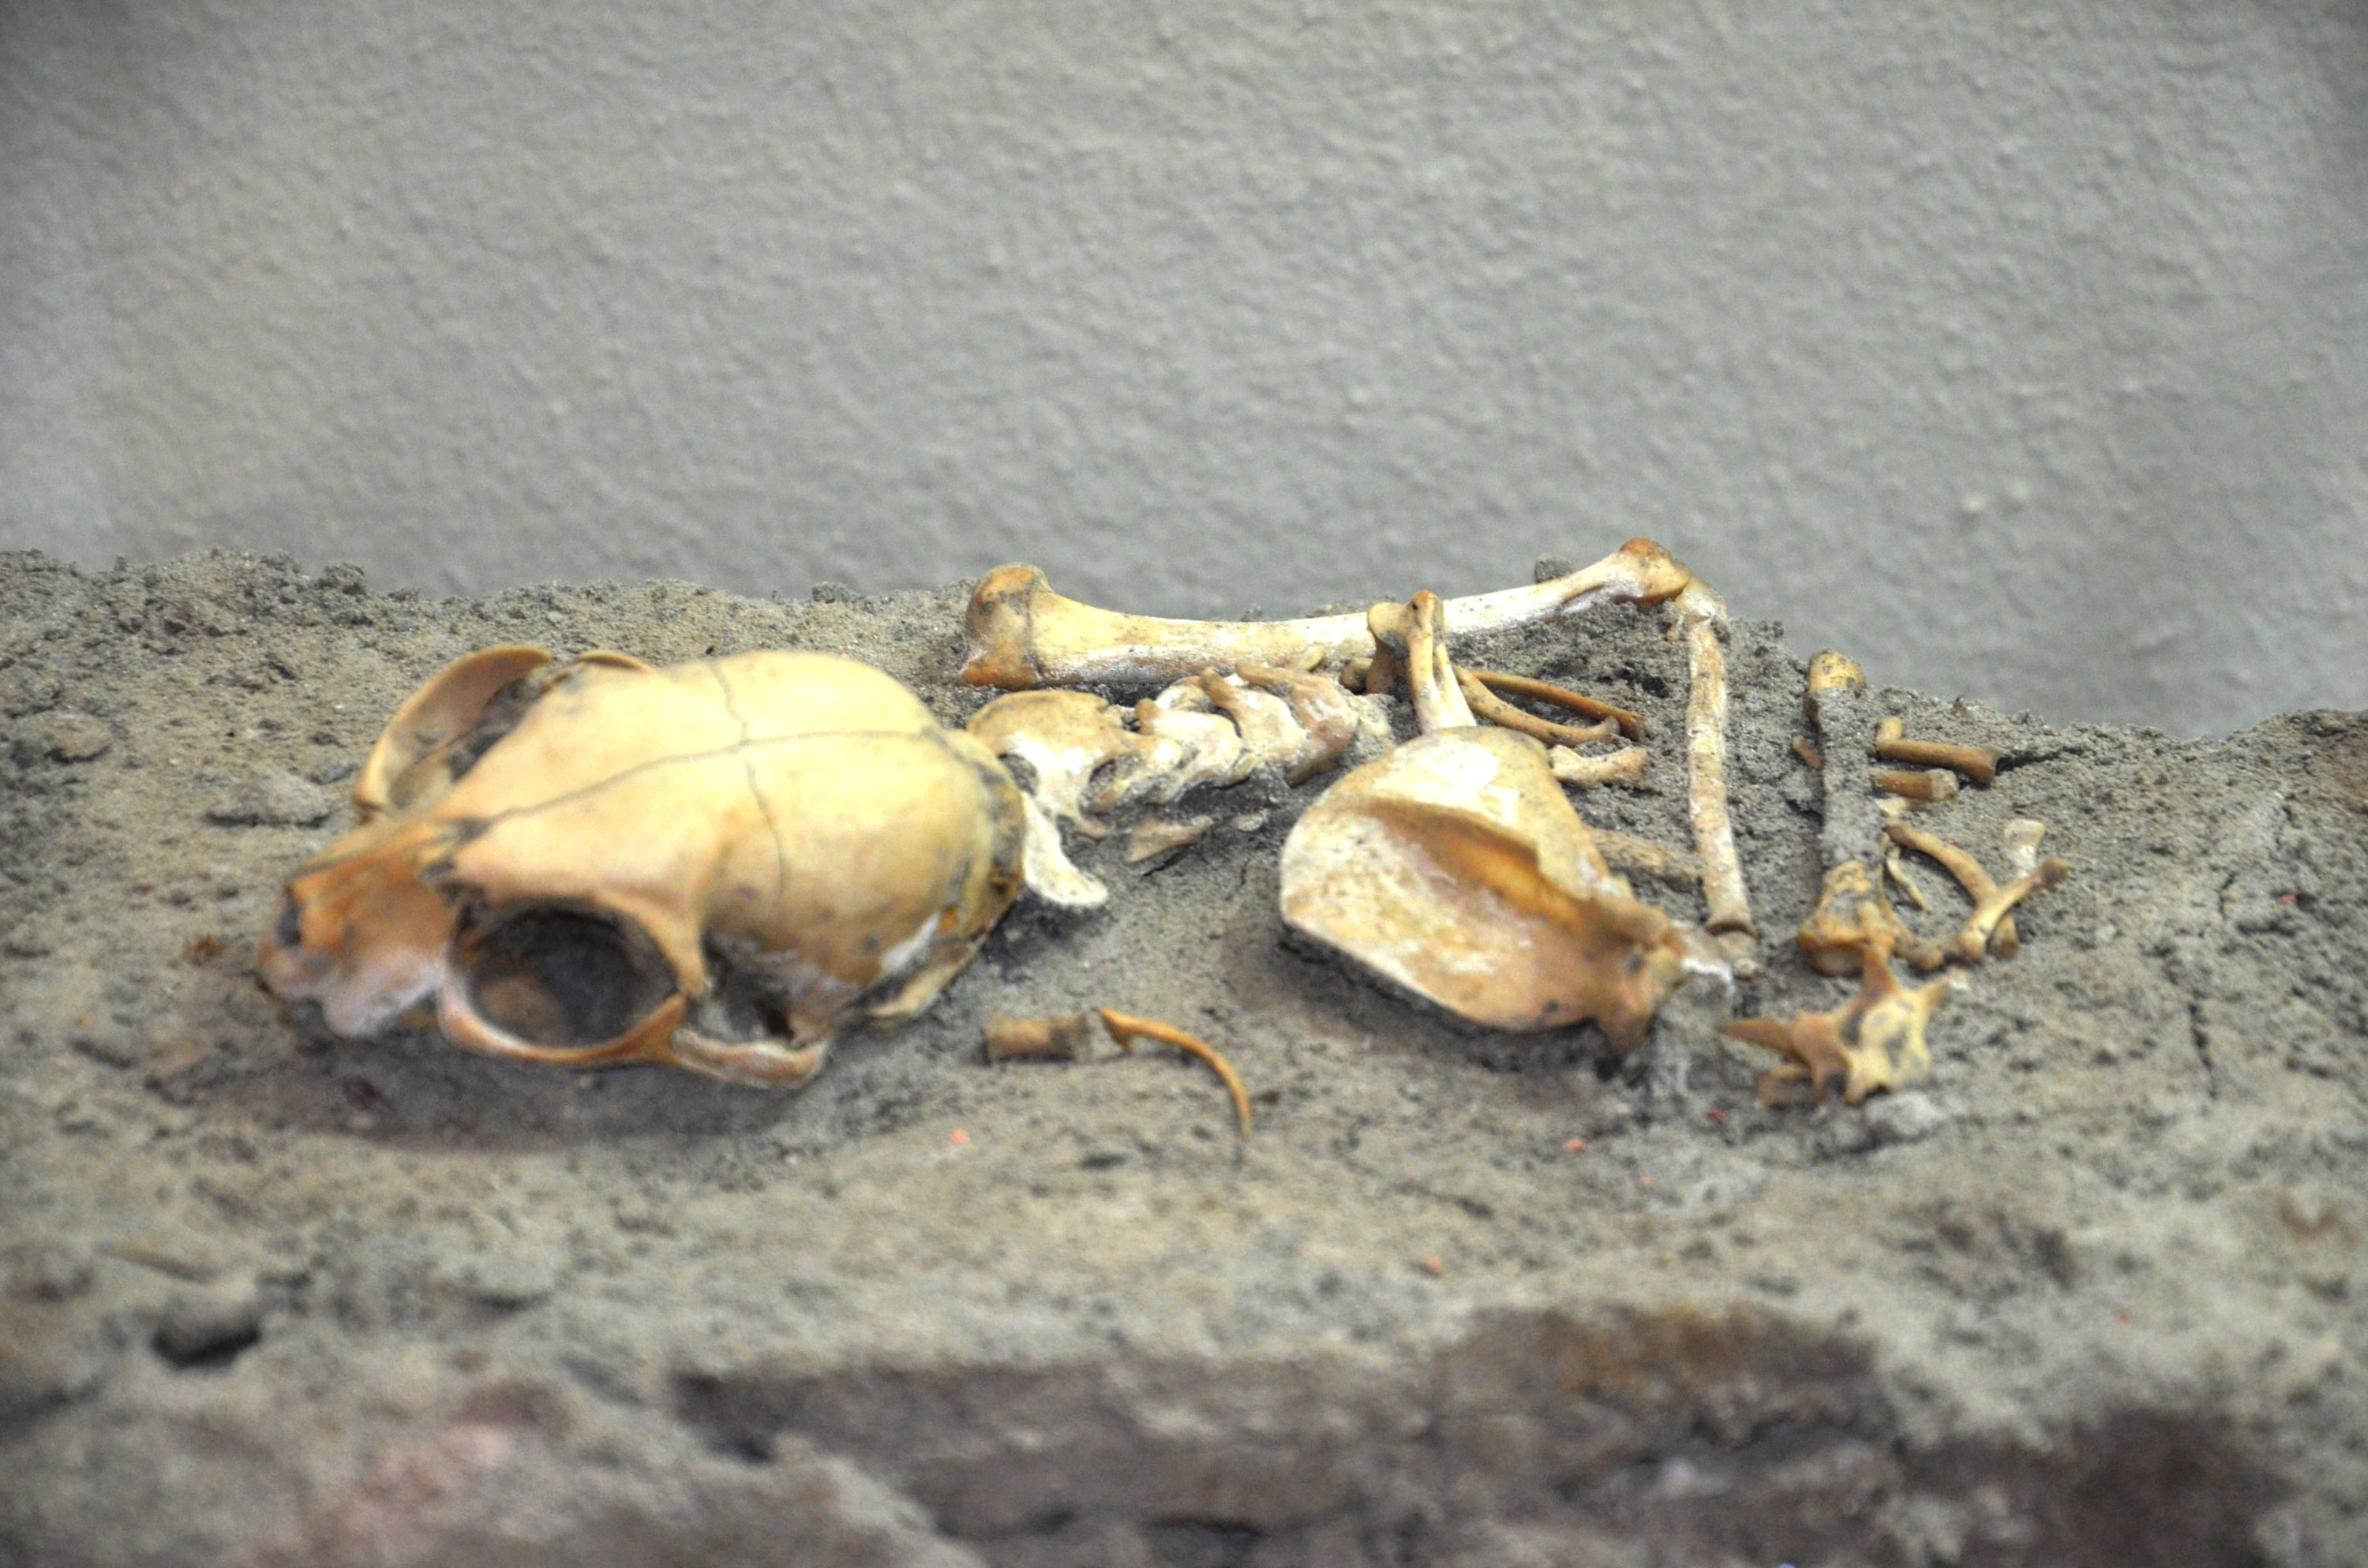 One of the cat skeletons unearthed during the excavations in the Yenikapı area. (DHA Photo)